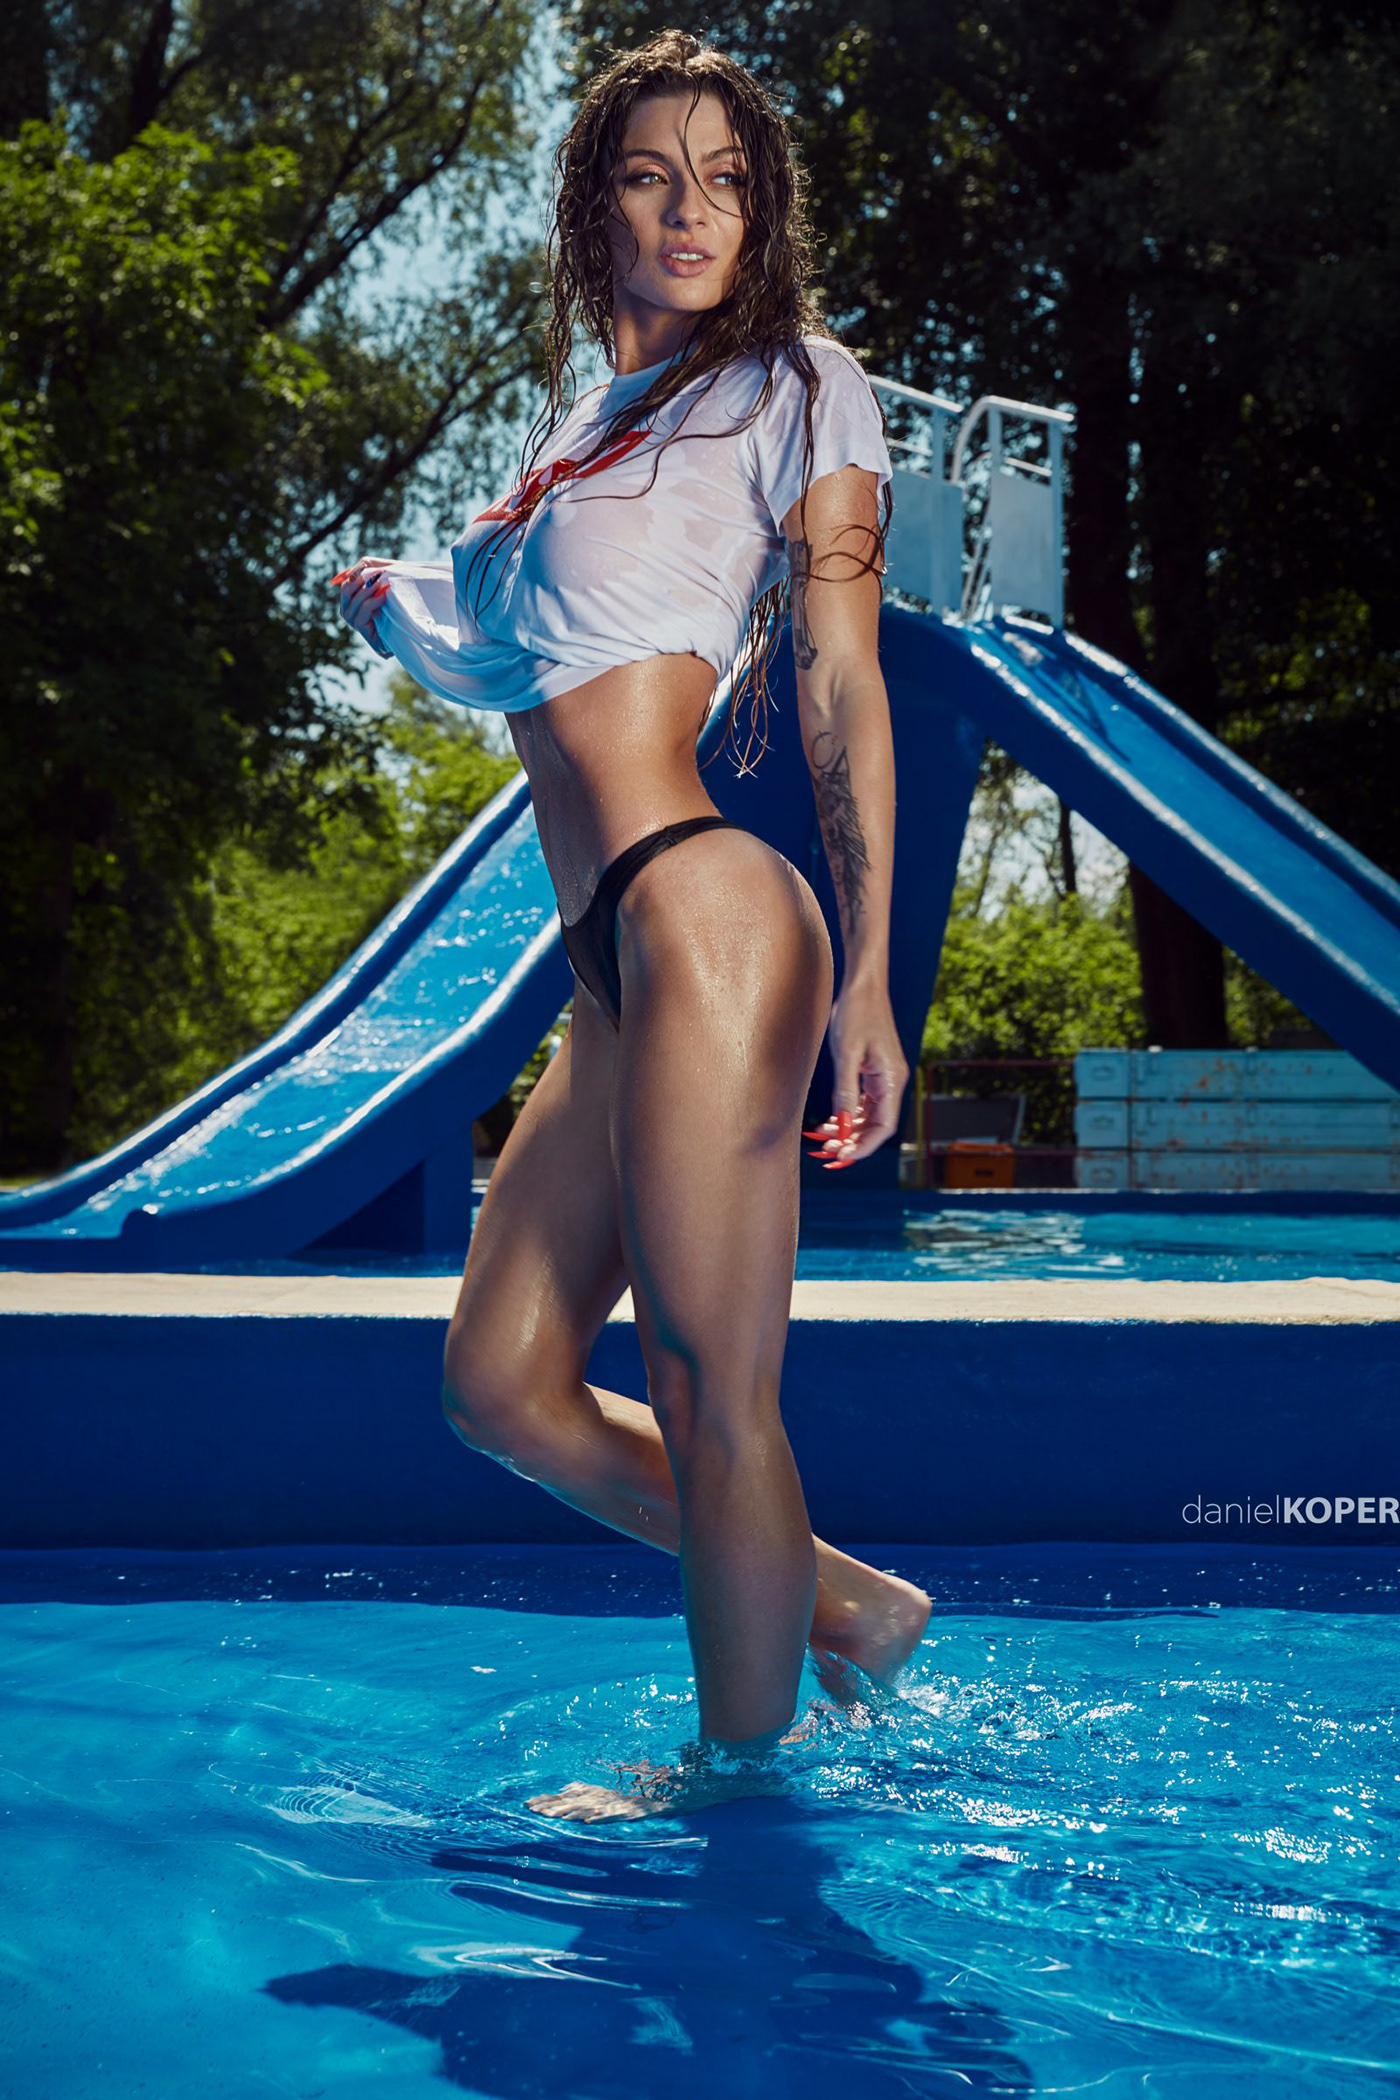 Patrycja in the pool / фотограф Daniel Koper